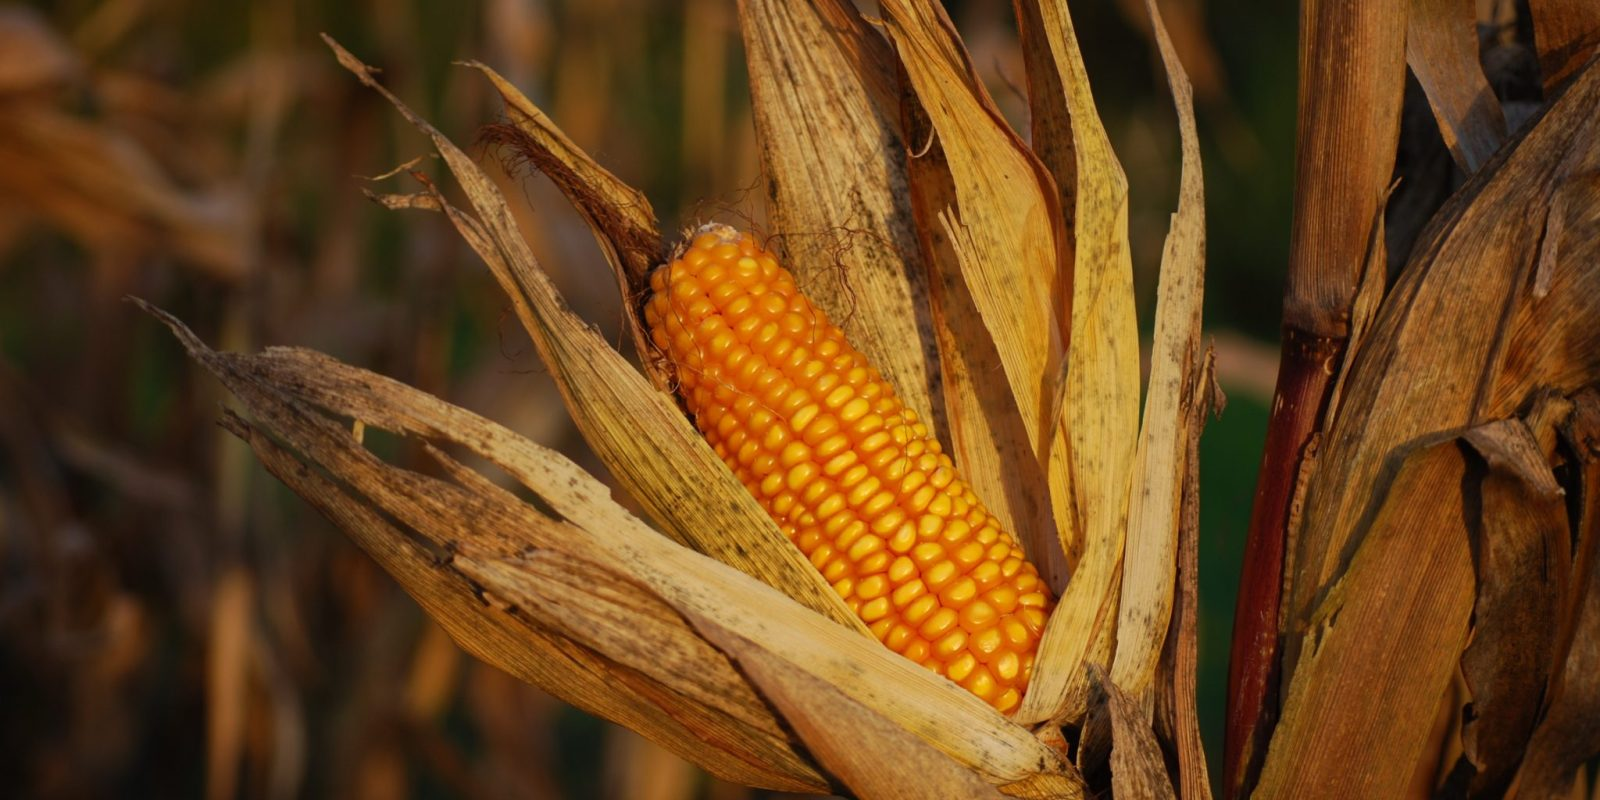 Ukraine's bumper corn crop to pressure U.S. exports business